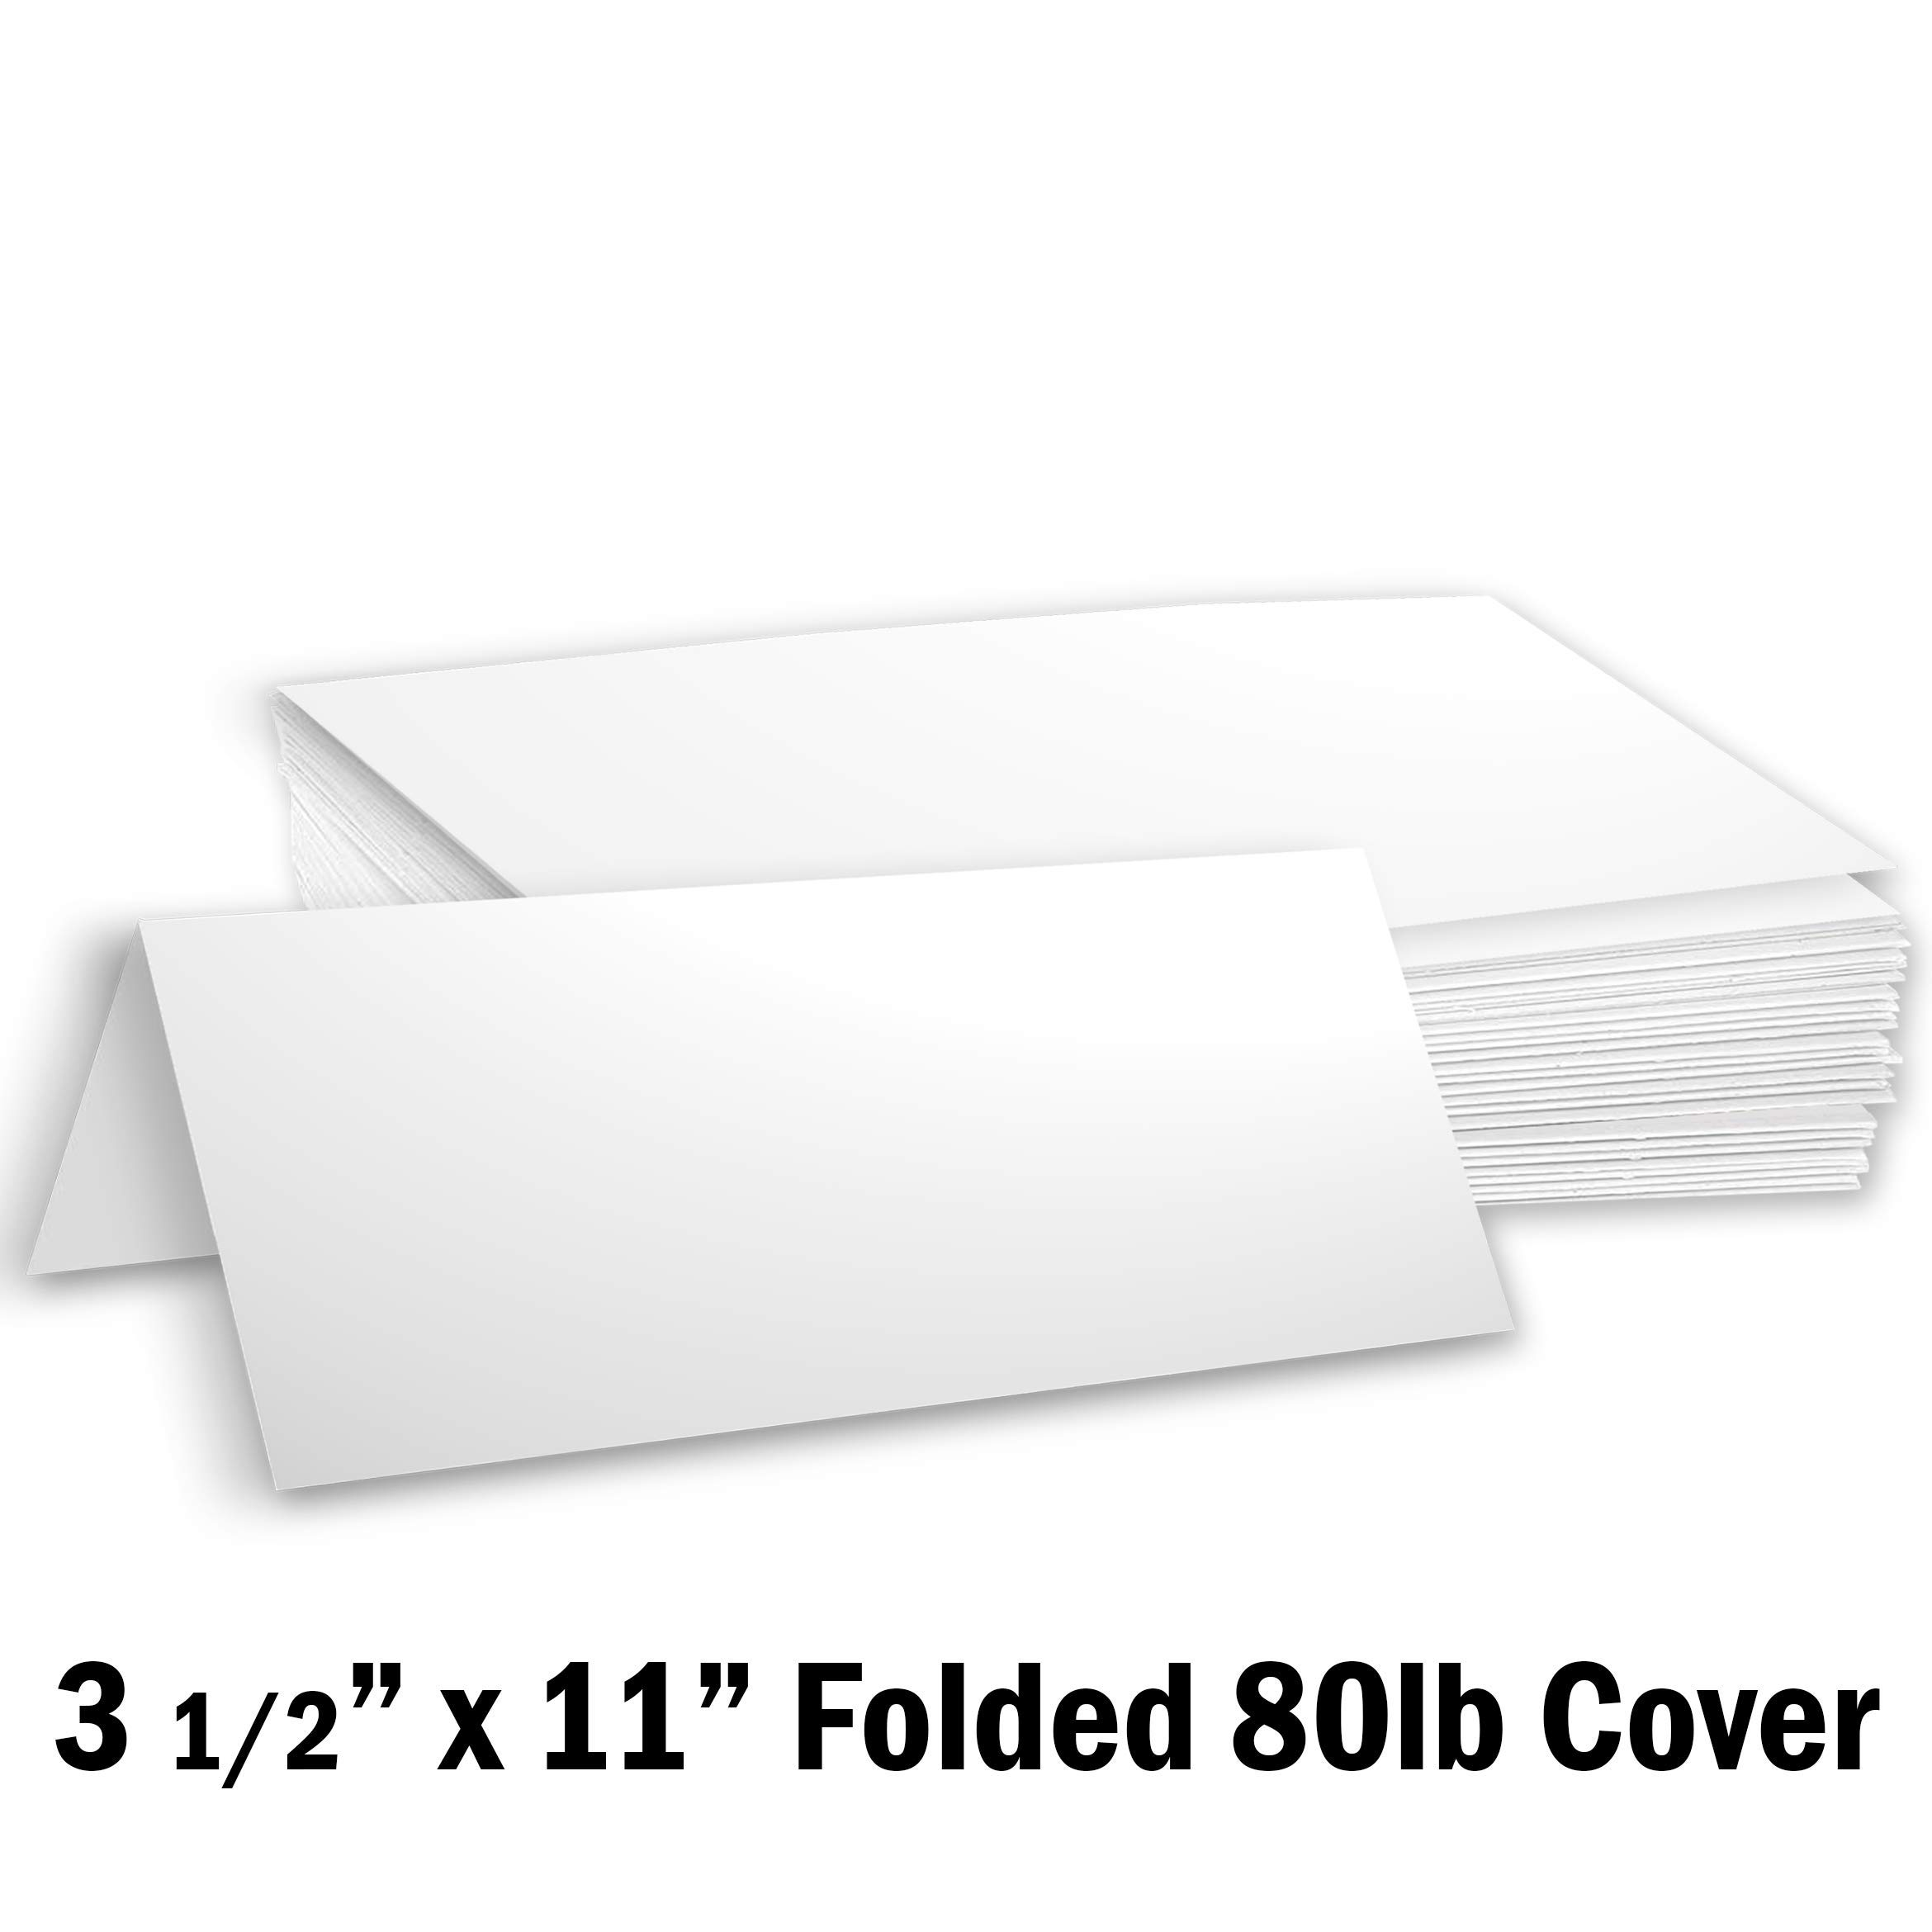 Hamilco Blank Tent Name Place Table Cards 3 1/2'' x 11'' Folded Card Stock - White Cardstock Paper 80lb Cover - 100 Pack by Hamilco